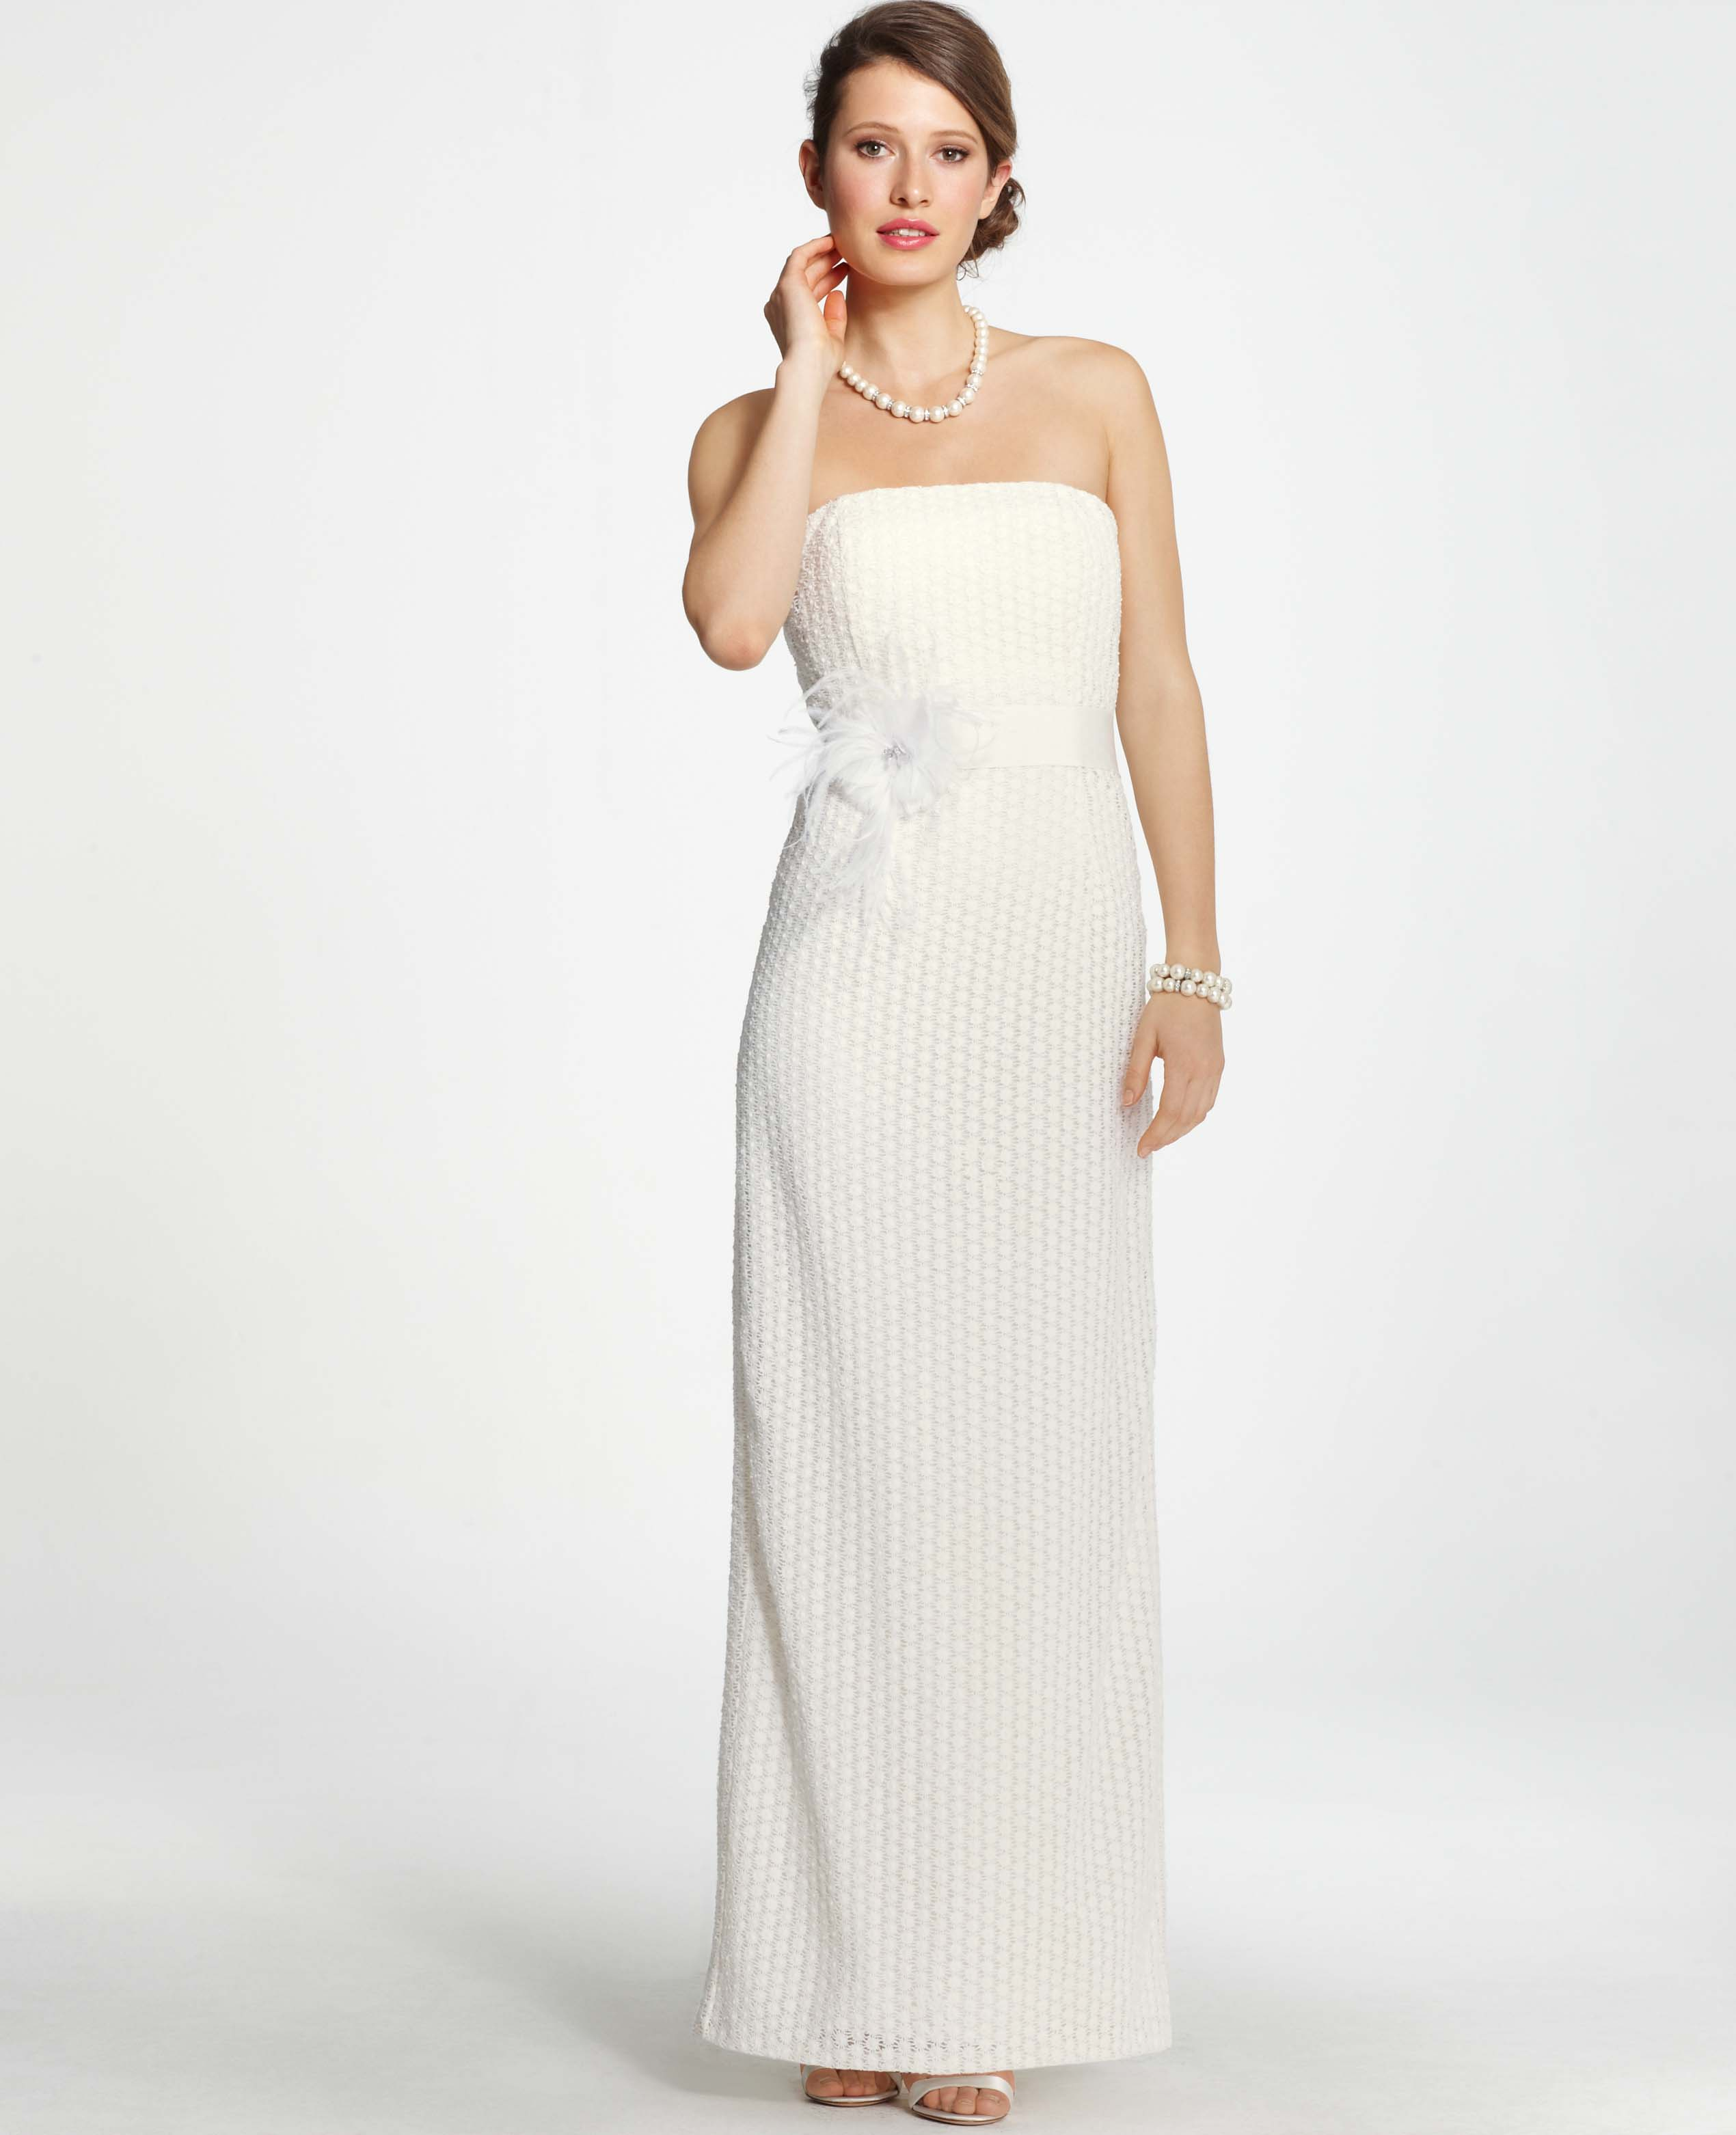 Lyst - Ann Taylor Lace Column Wedding Dress in White